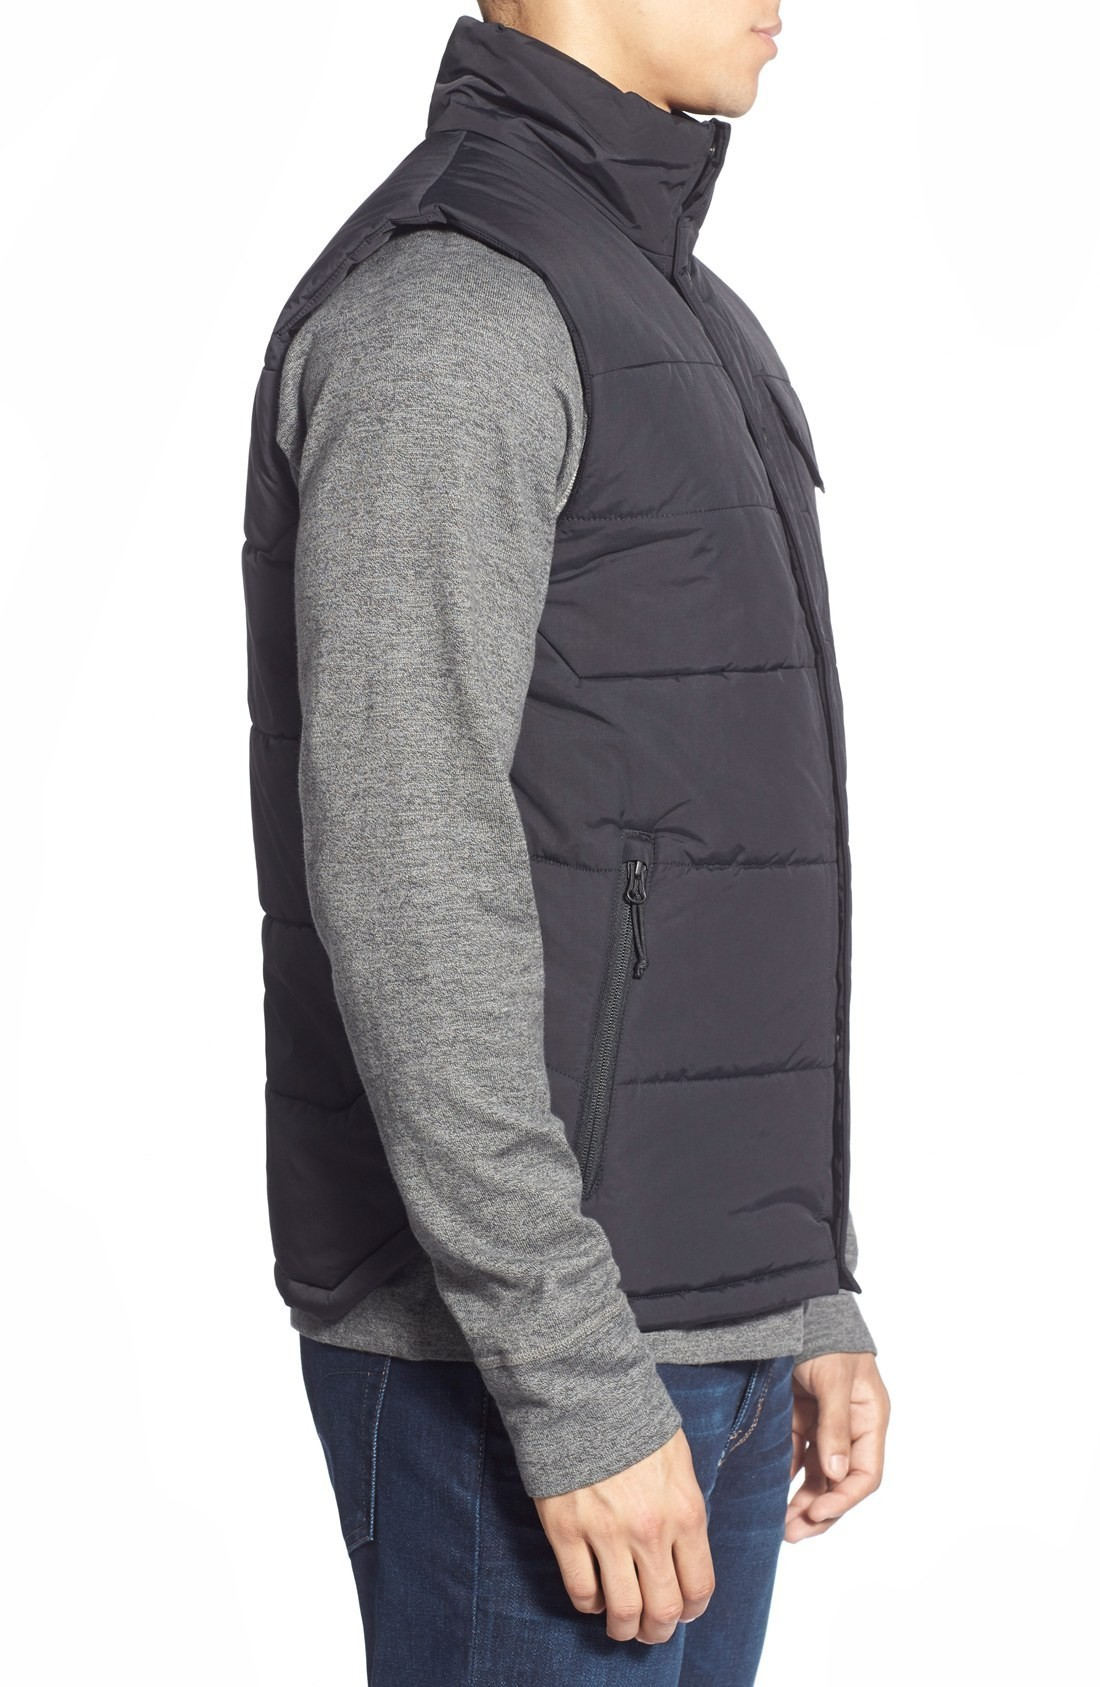 【関税送料込】Patrick's Point' Quilted Vest THE NORTH FACE